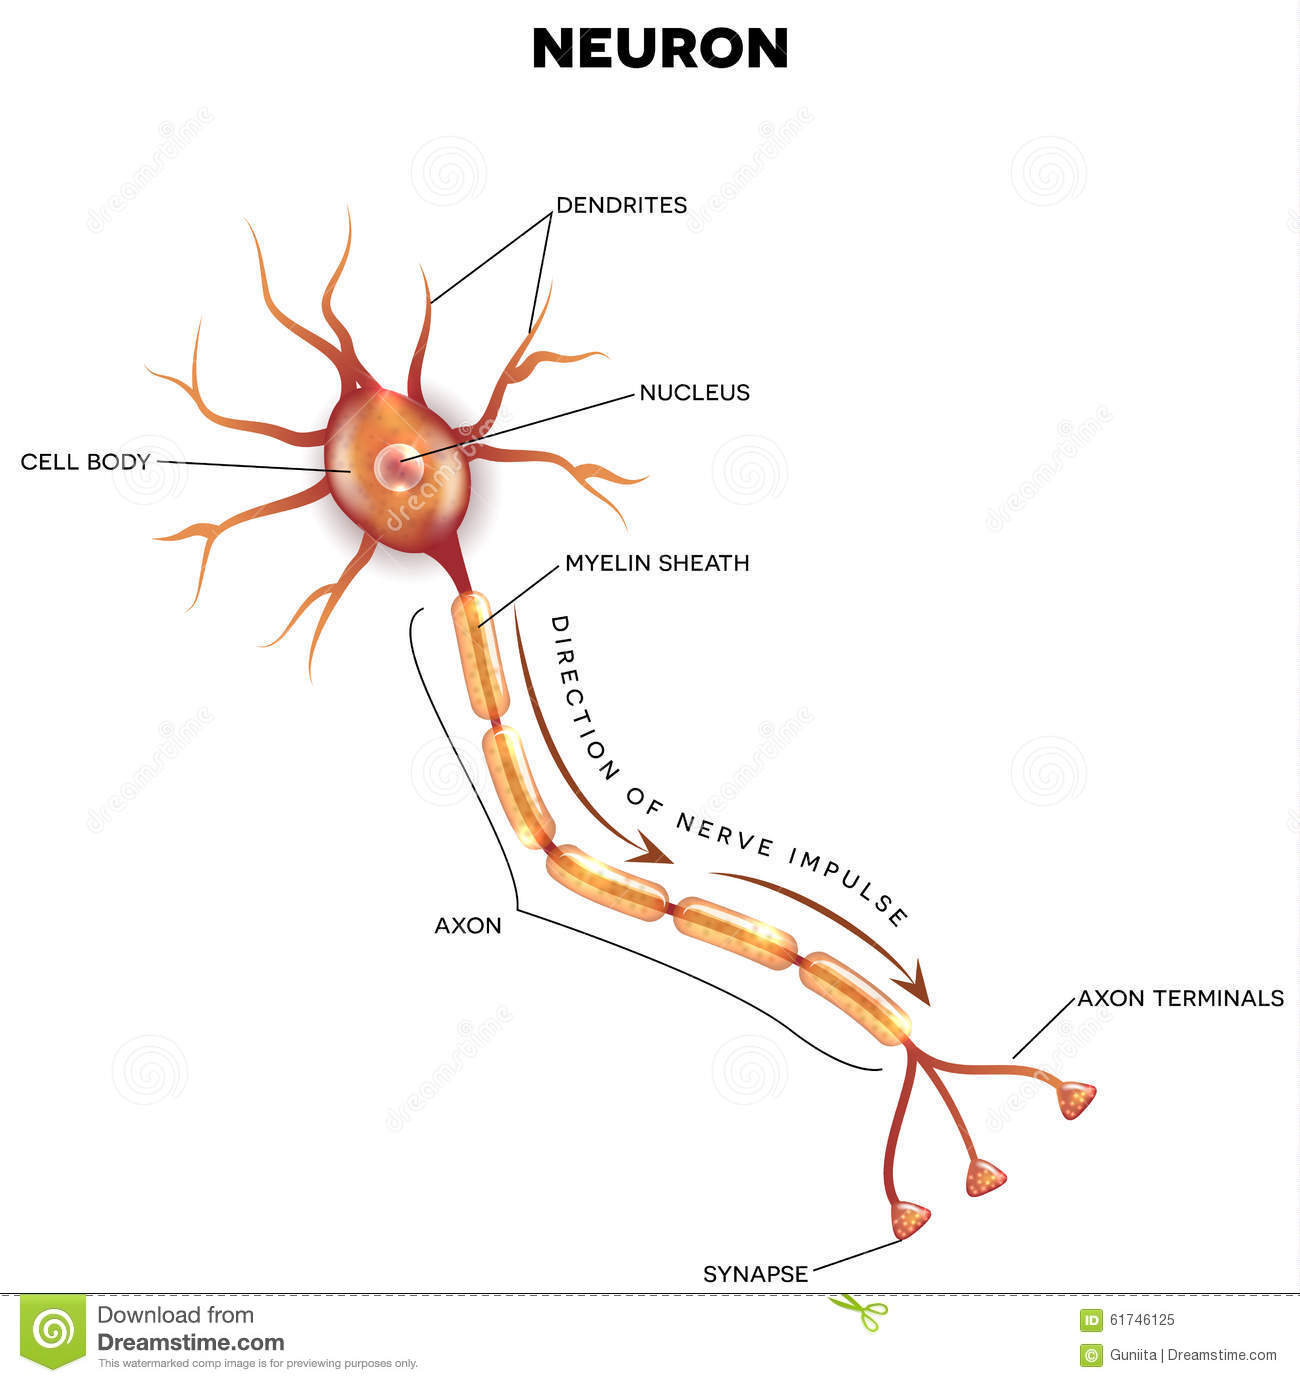 an analysis of the human body and the anatomy of the neural activity of the brain Behavioral studies on body perception neural basis of body perception the temporal dynamics of body perception future directions see also references action perception and the decoding of complex behavior abstract.